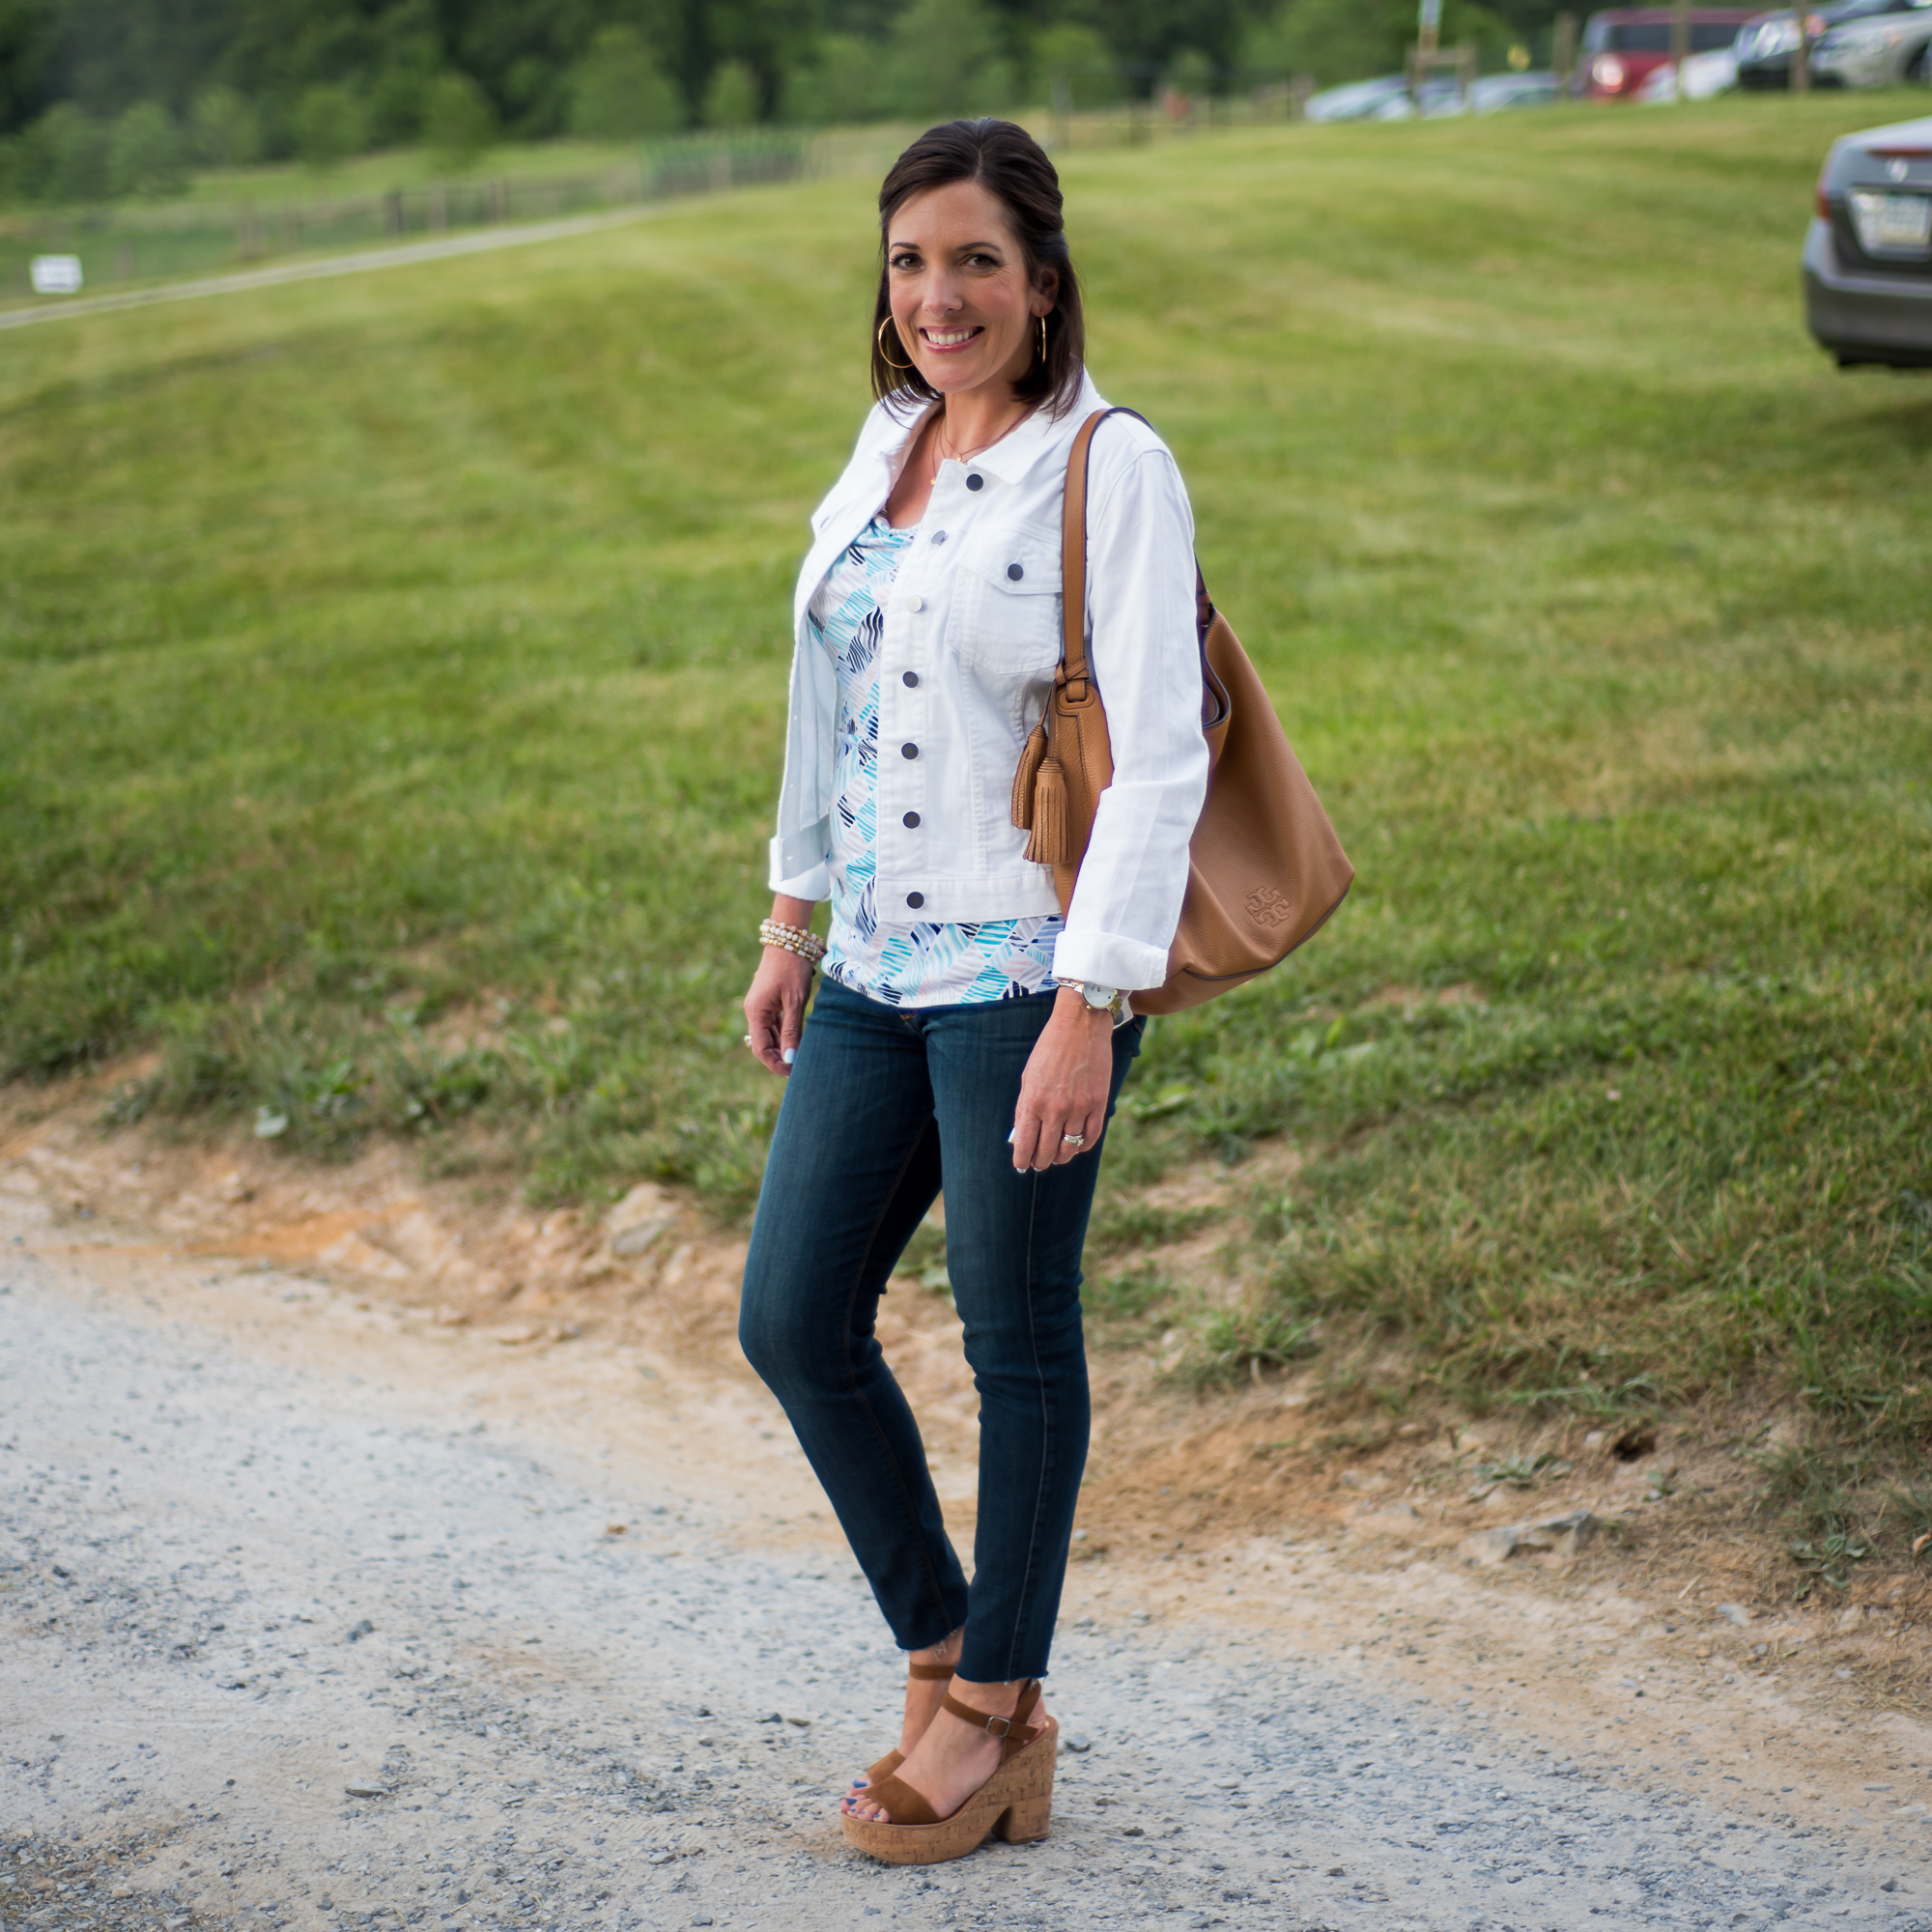 Prints Charming Casual Summer Dinner Outfit